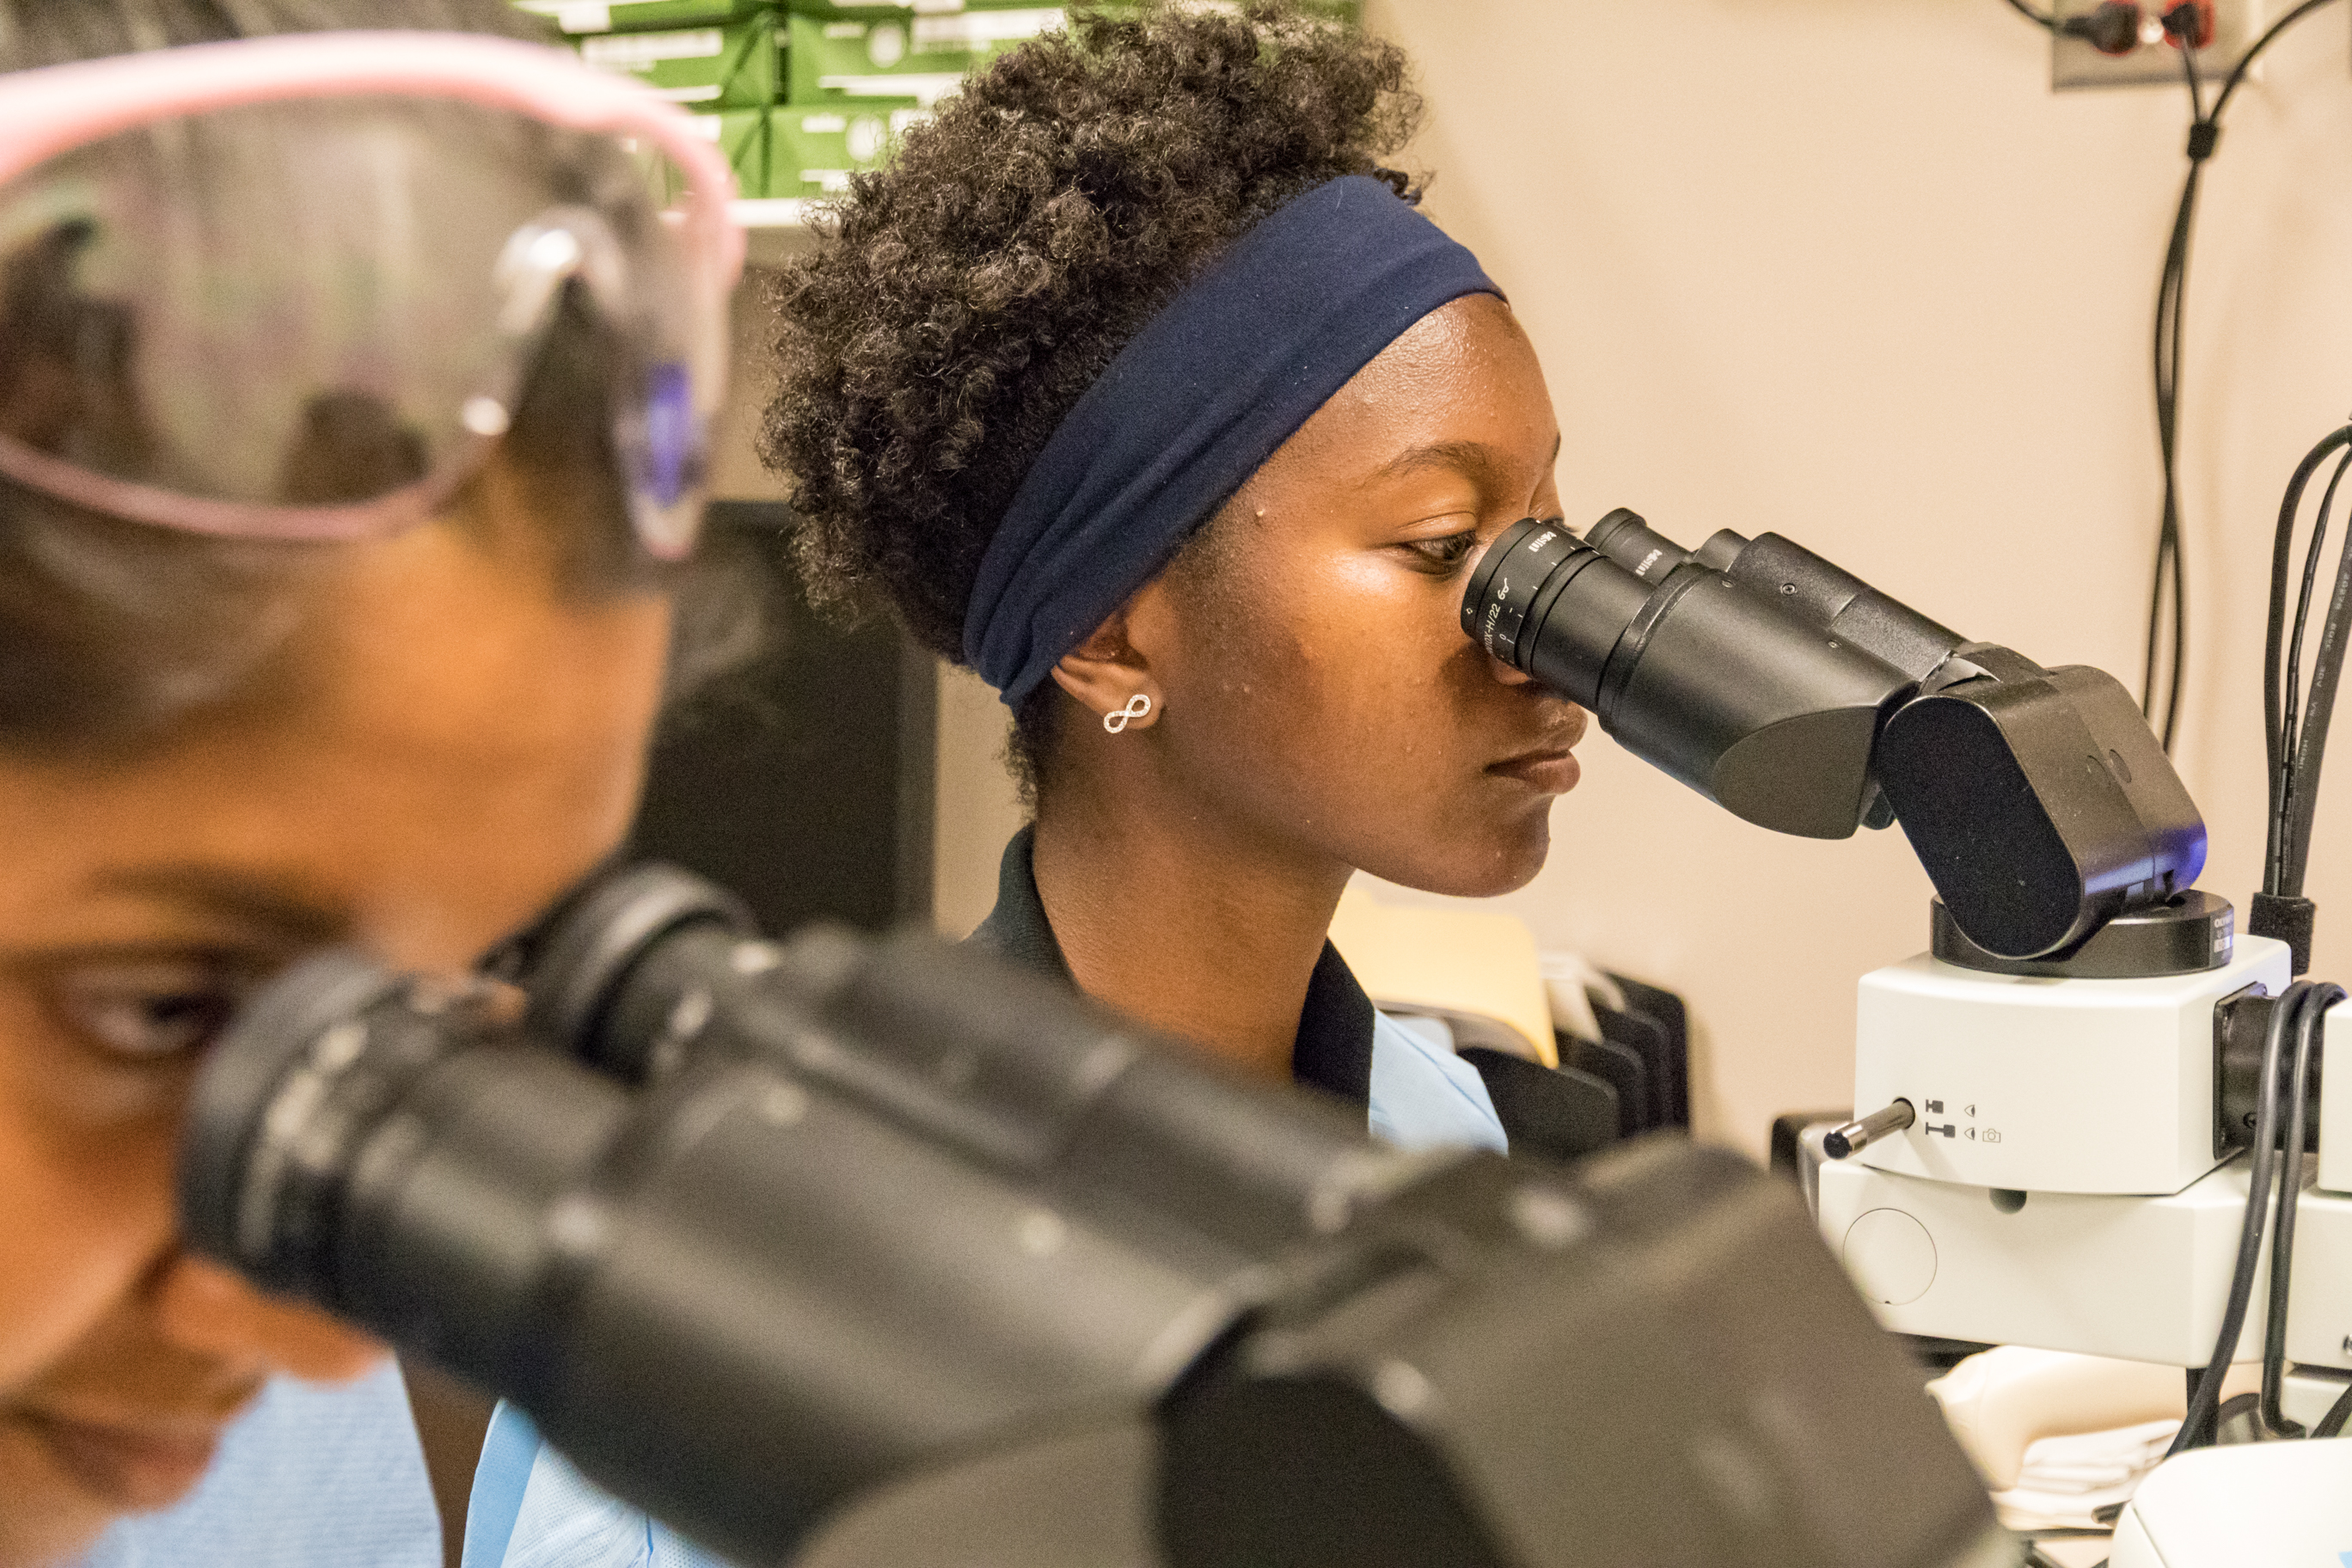 Students looking through microscopes.